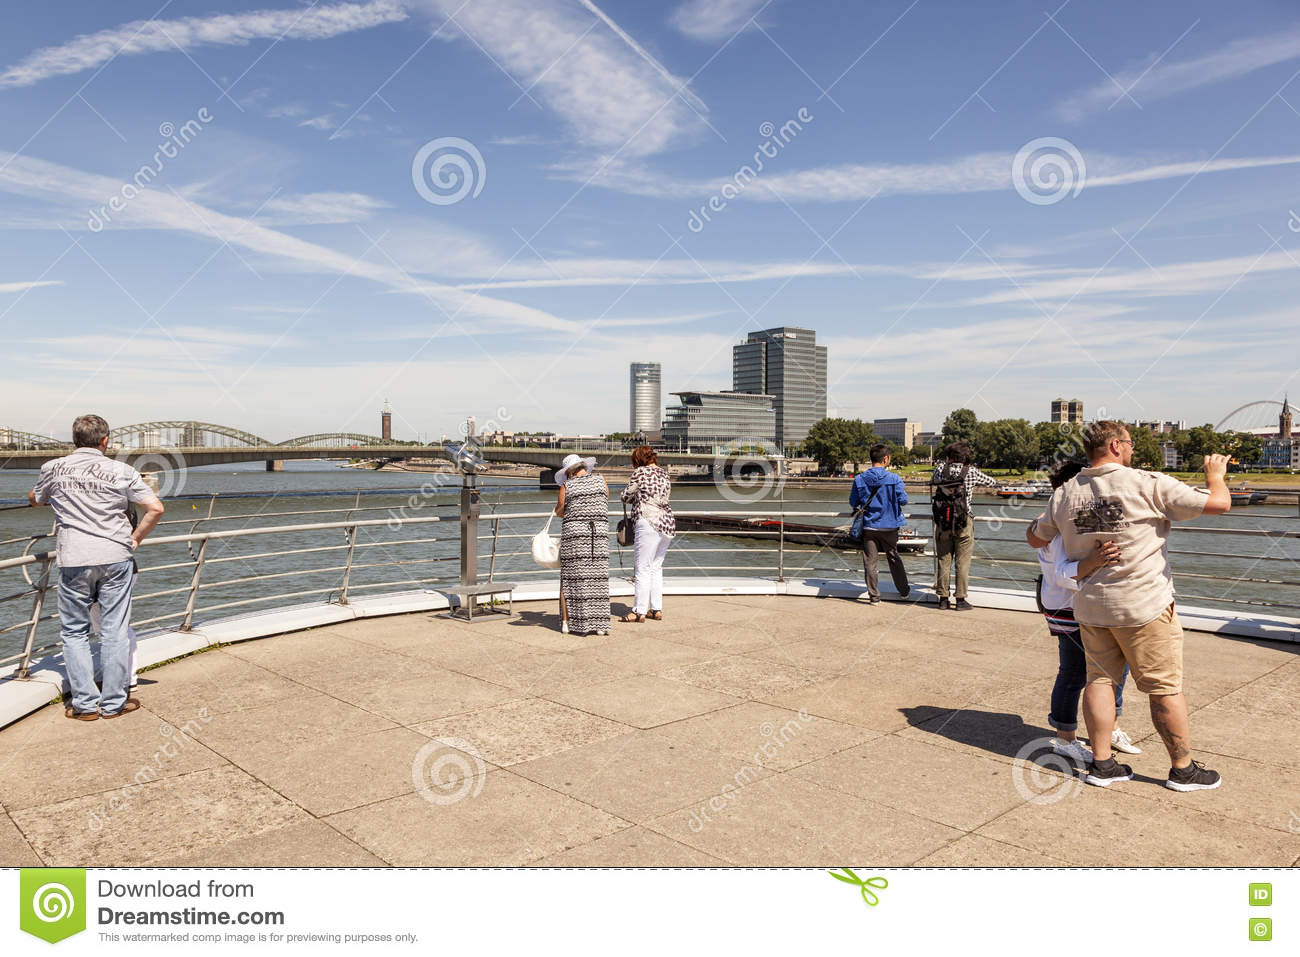 People at the Rhine River in Cologne, Germany